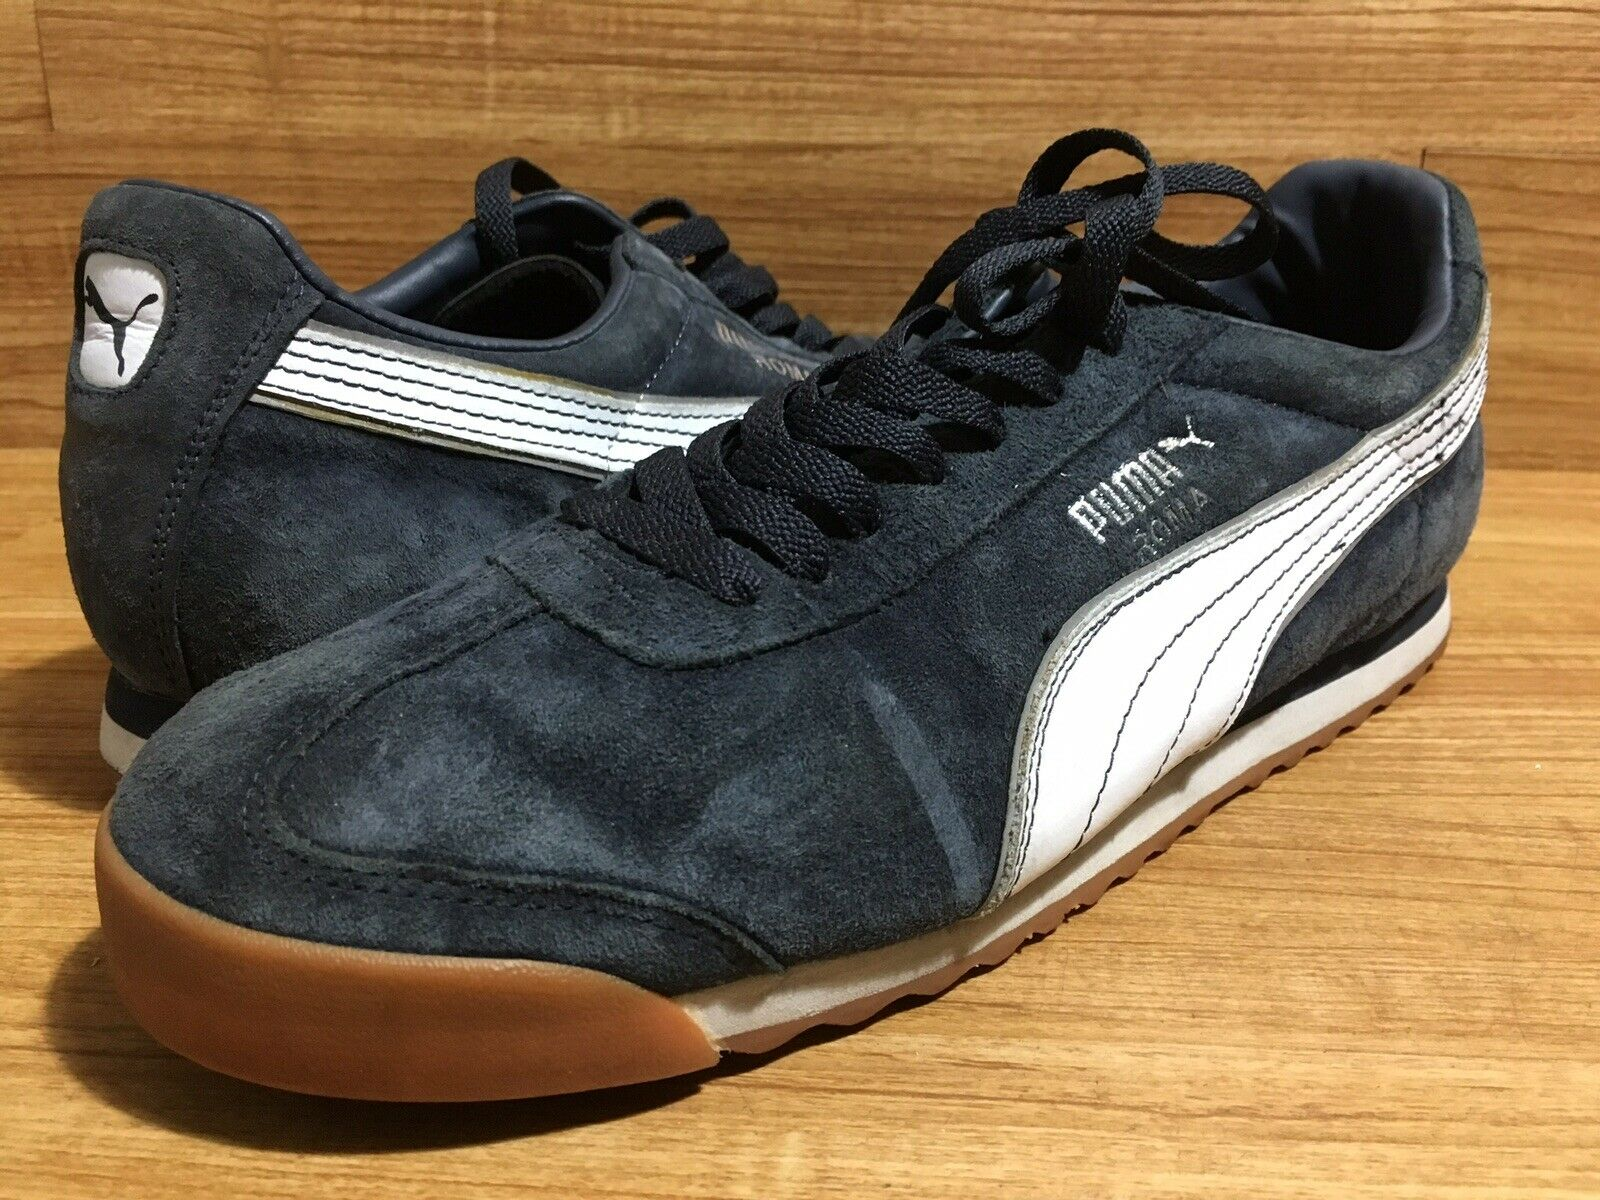 Puma Roma Sz 10.5 Navy bluee Suede Leather Fashion Sneaker EUC 44 EU